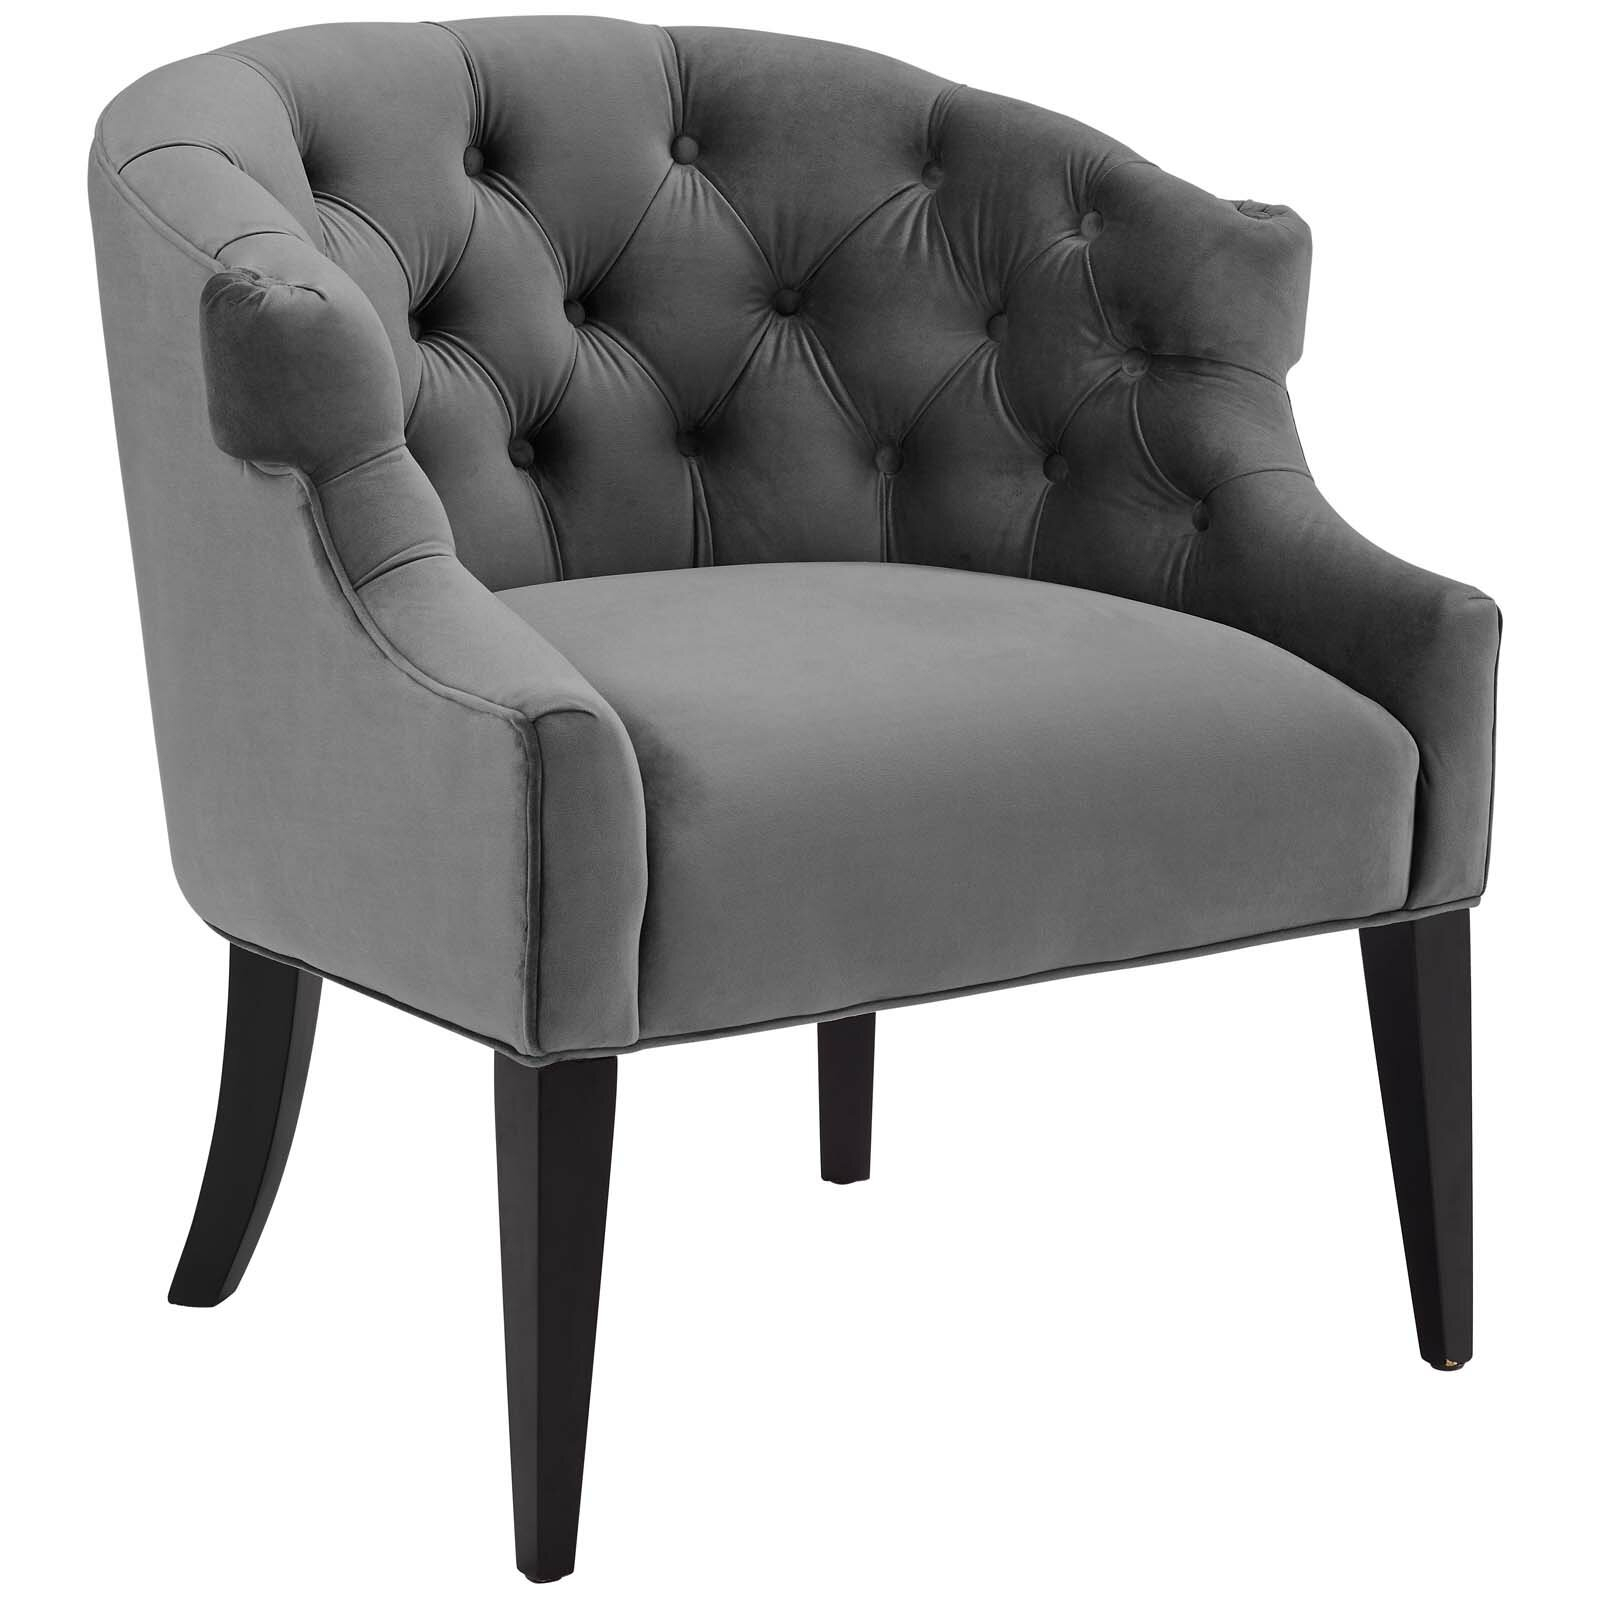 Amerson Armchair With Regard To Ringwold Armchairs (View 11 of 15)